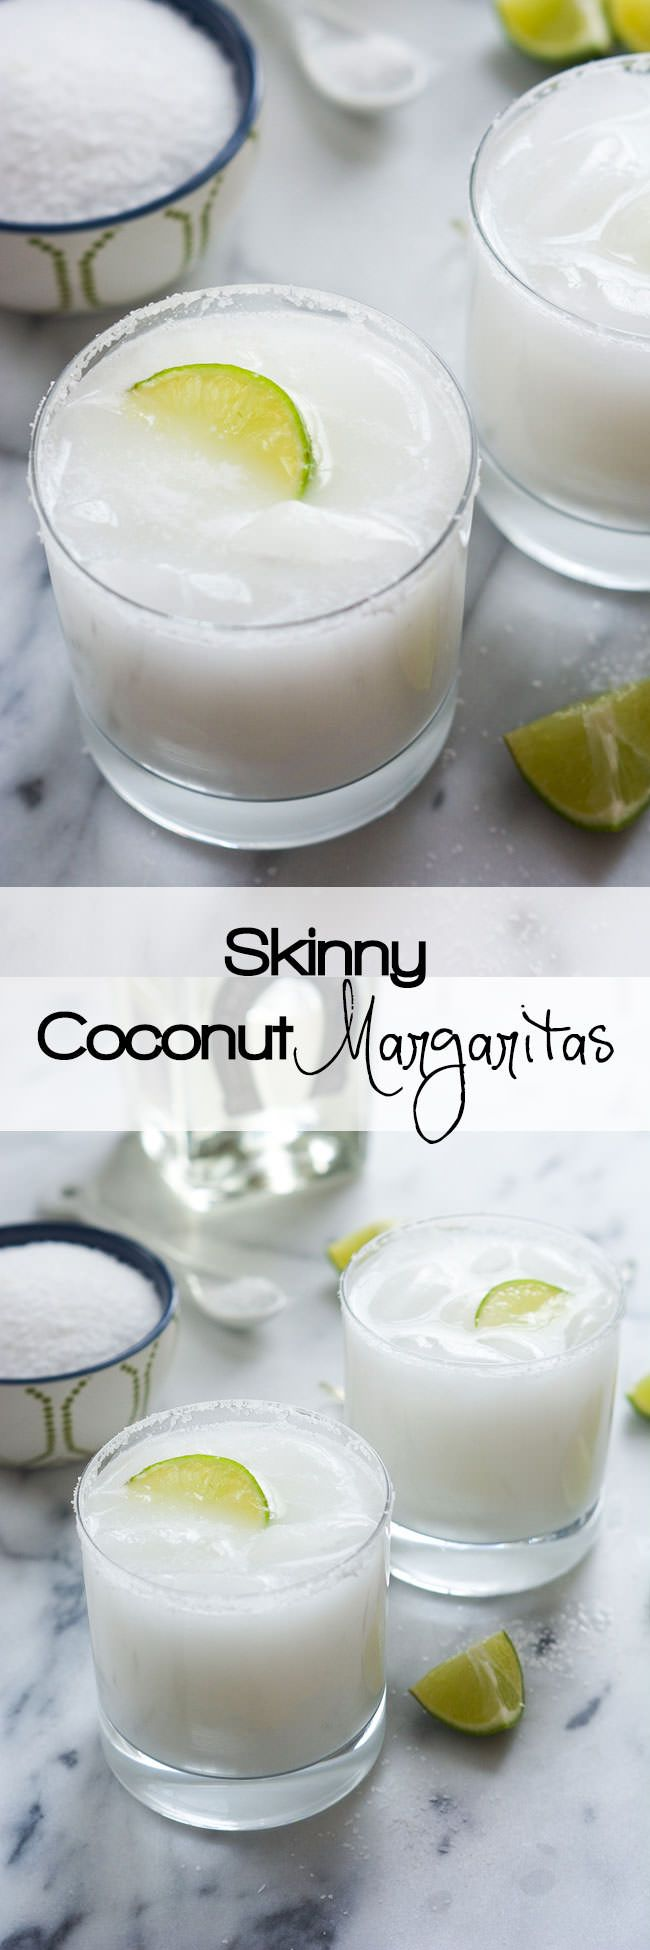 Skinny Coconut Margarita Recipe | On The Rocks, Easy, Blue, Creamy, Paleo, Tequila